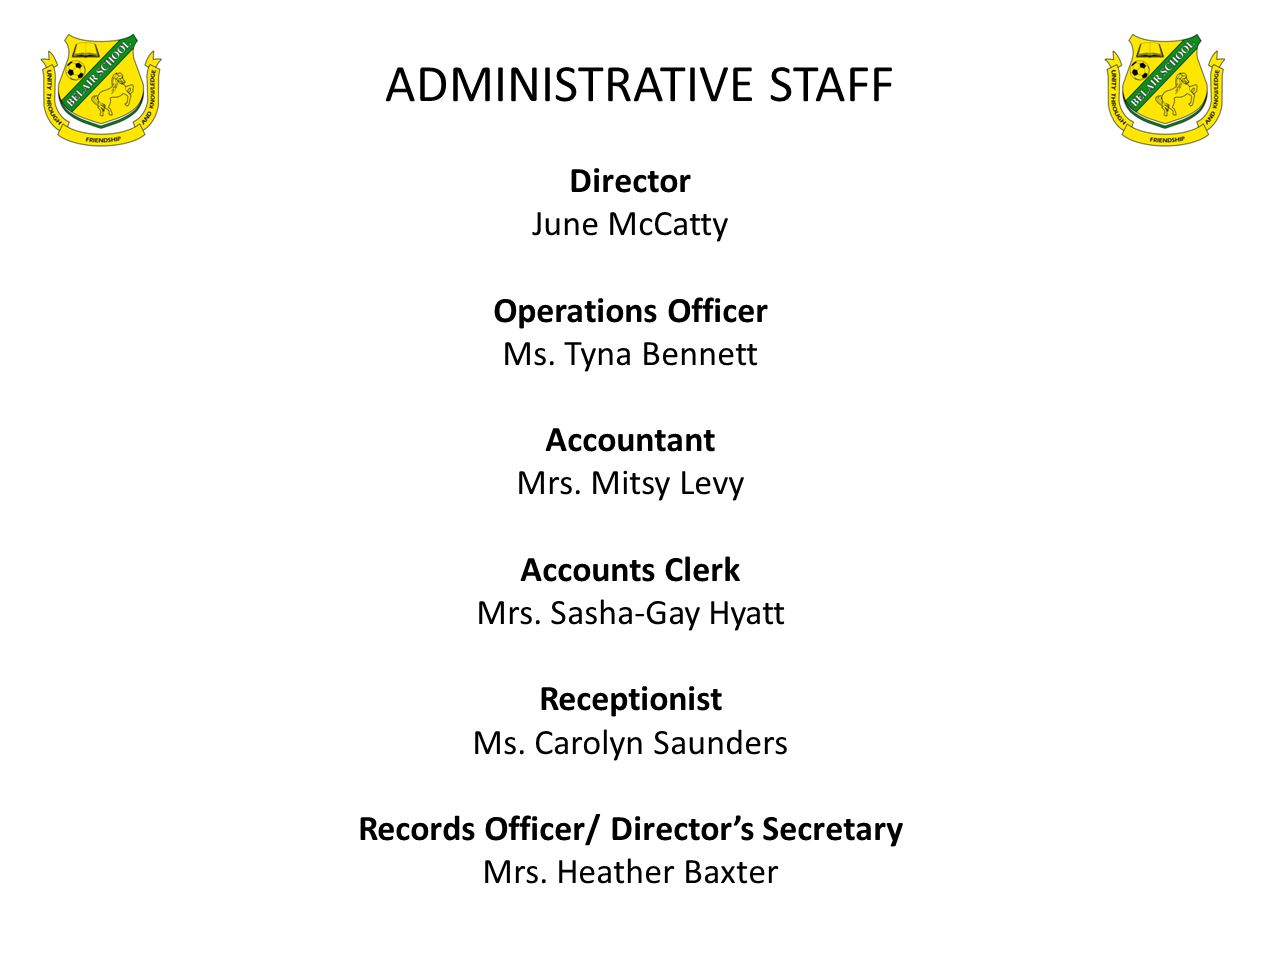 Records Officer/ Director's Secretary